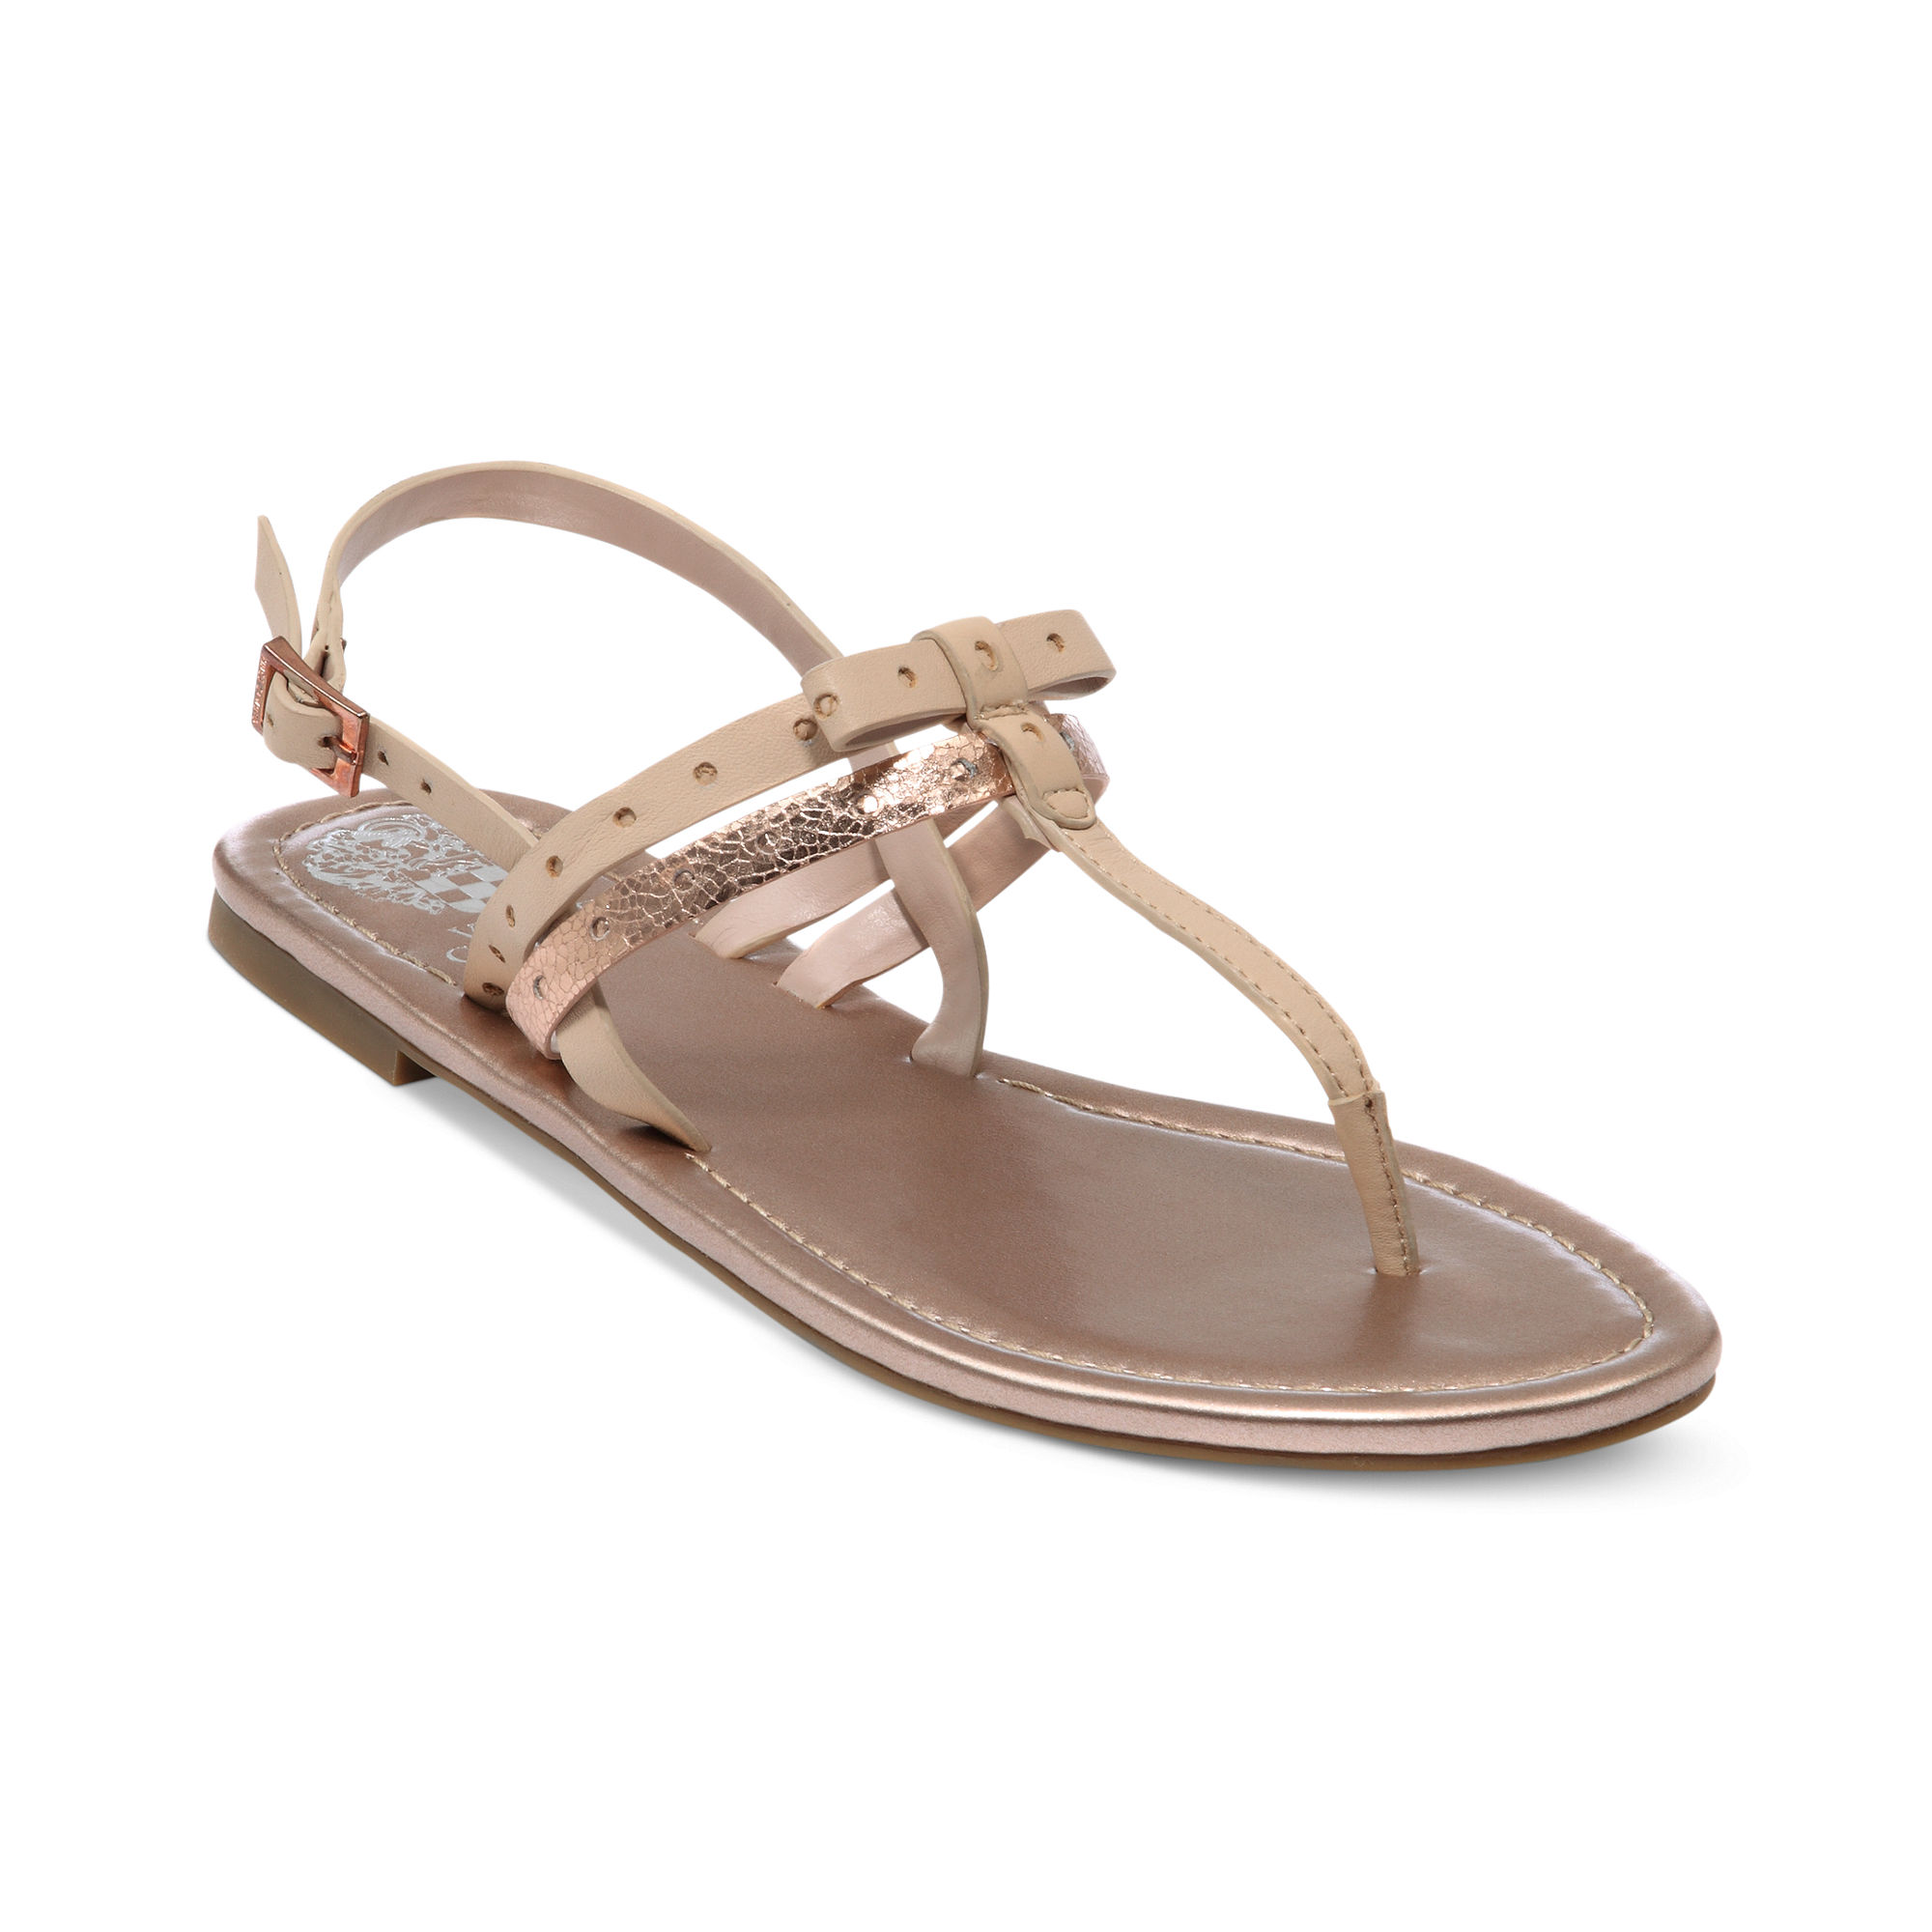 Vince Camuto Magda Flat Thong Sandals In Beige Black